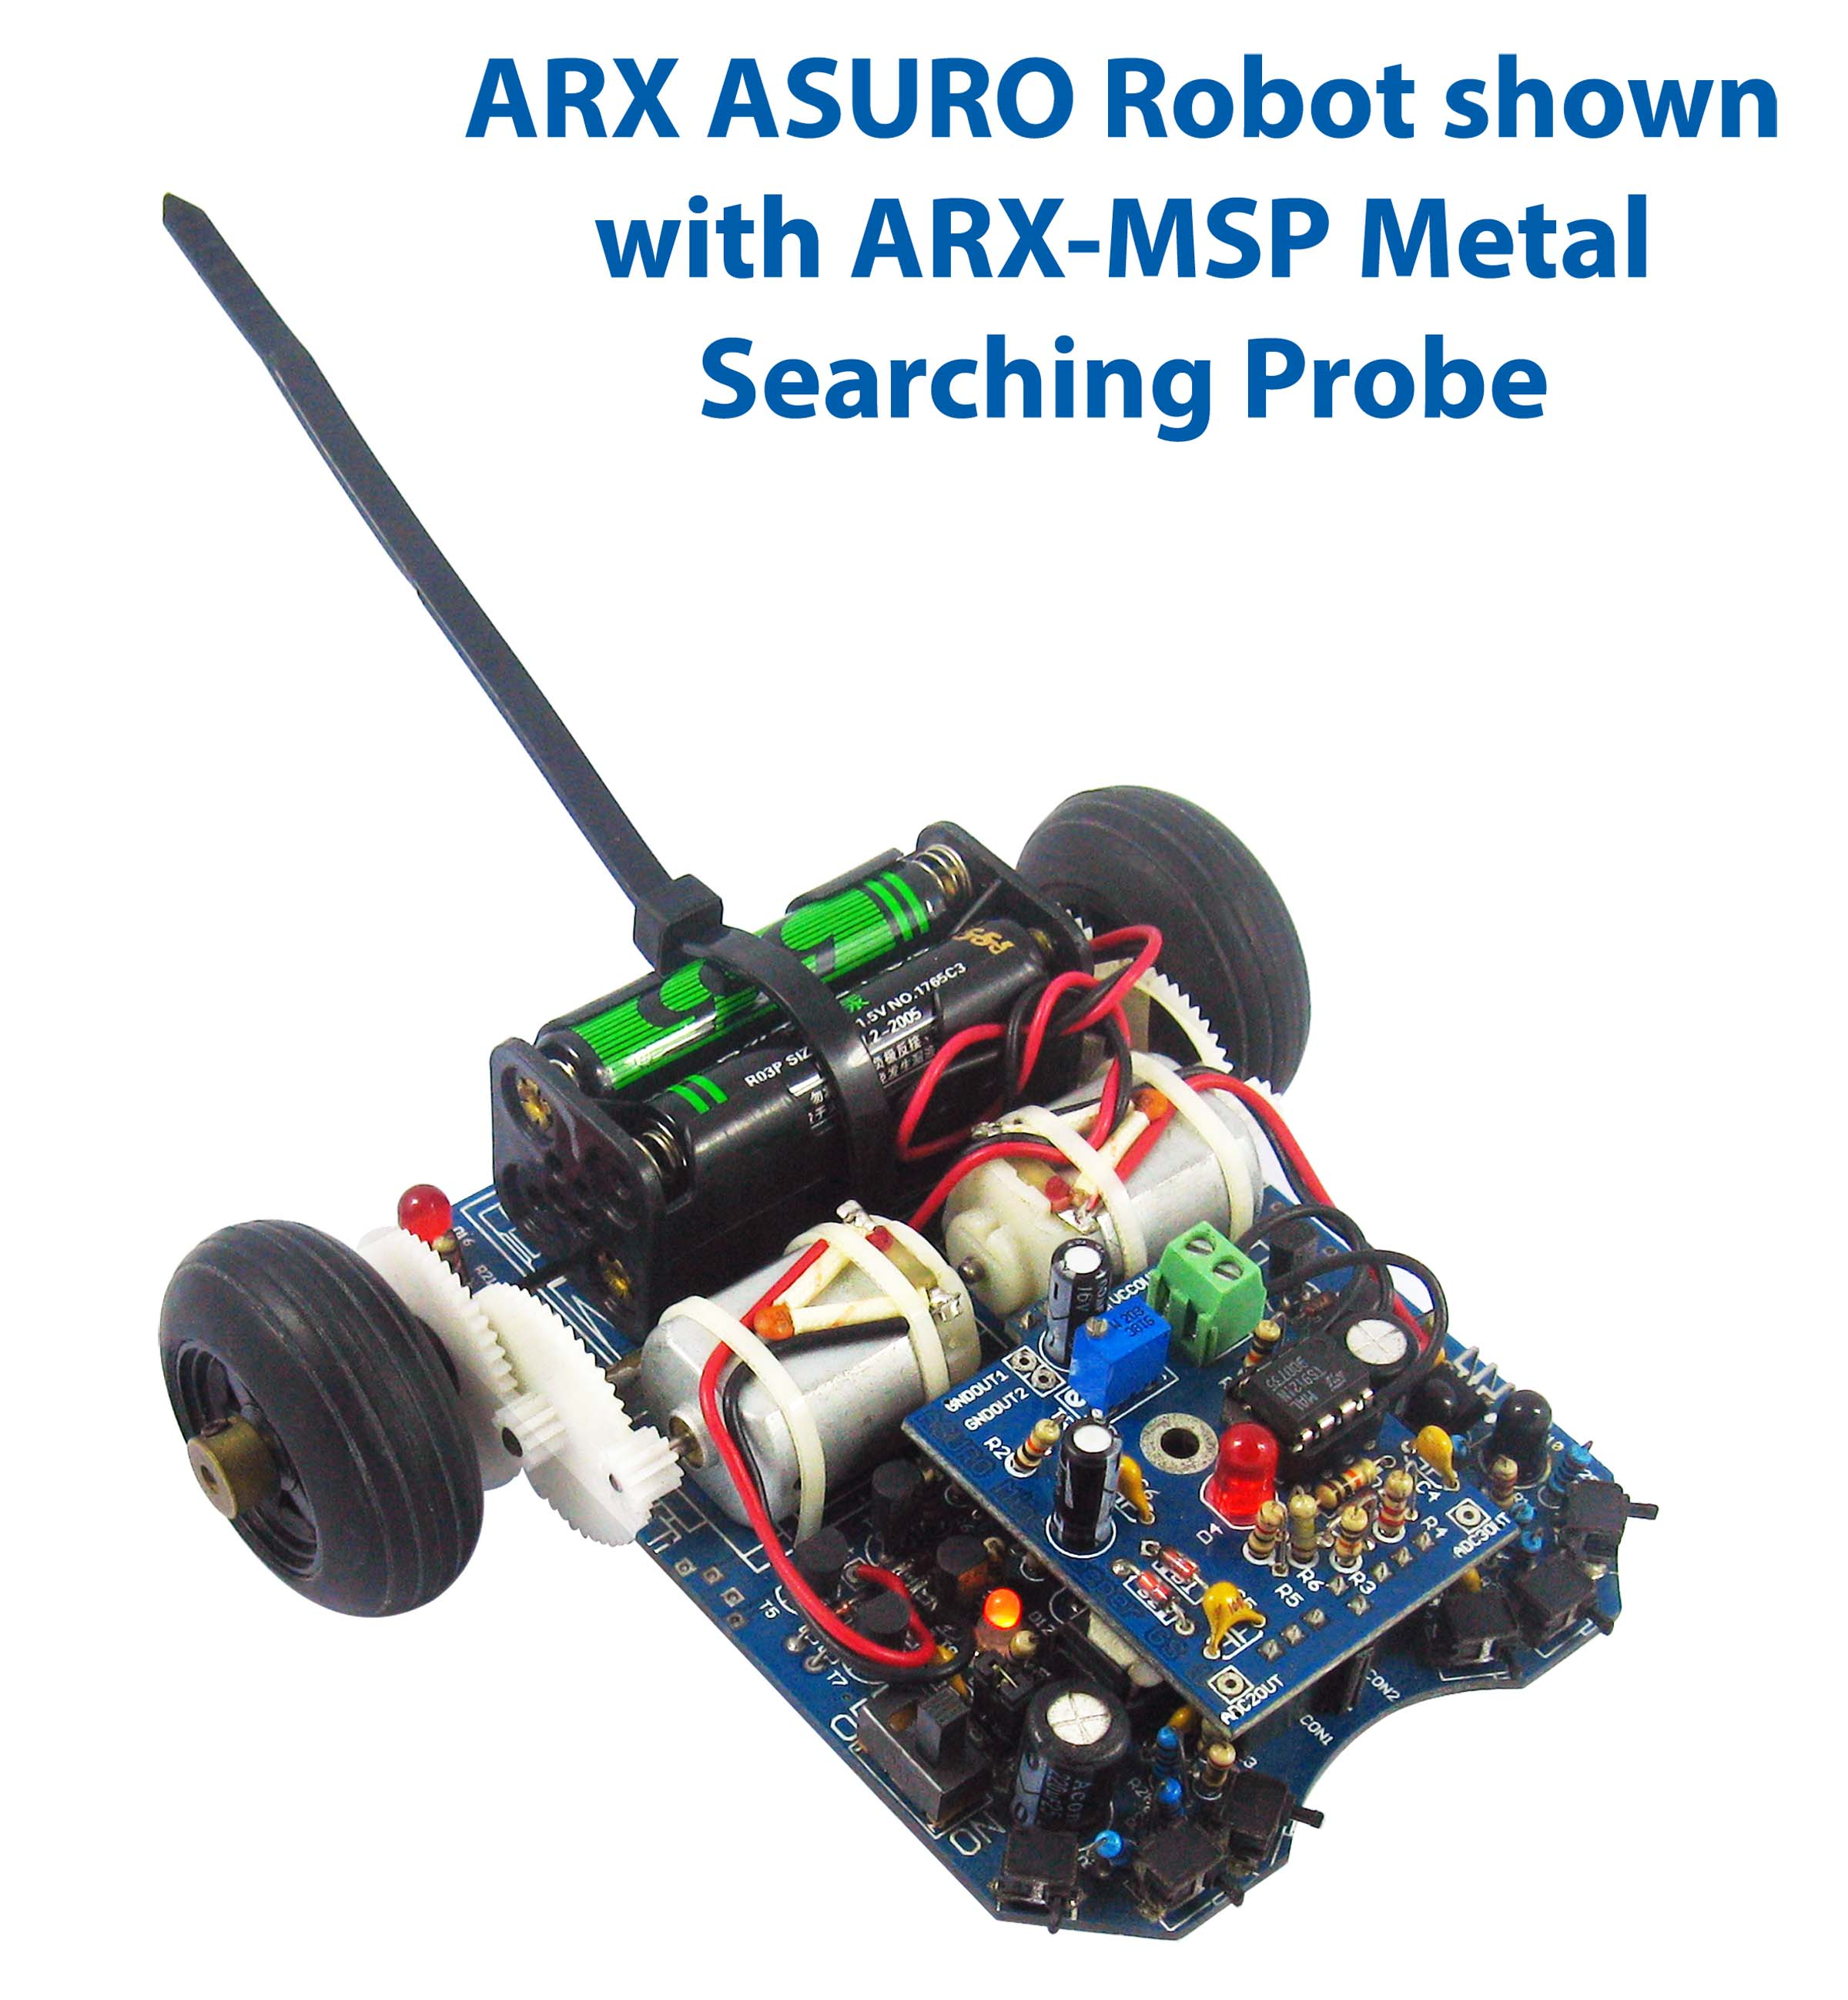 Global Specialties ARX-MSP ARX Metal Searching Probe Photo